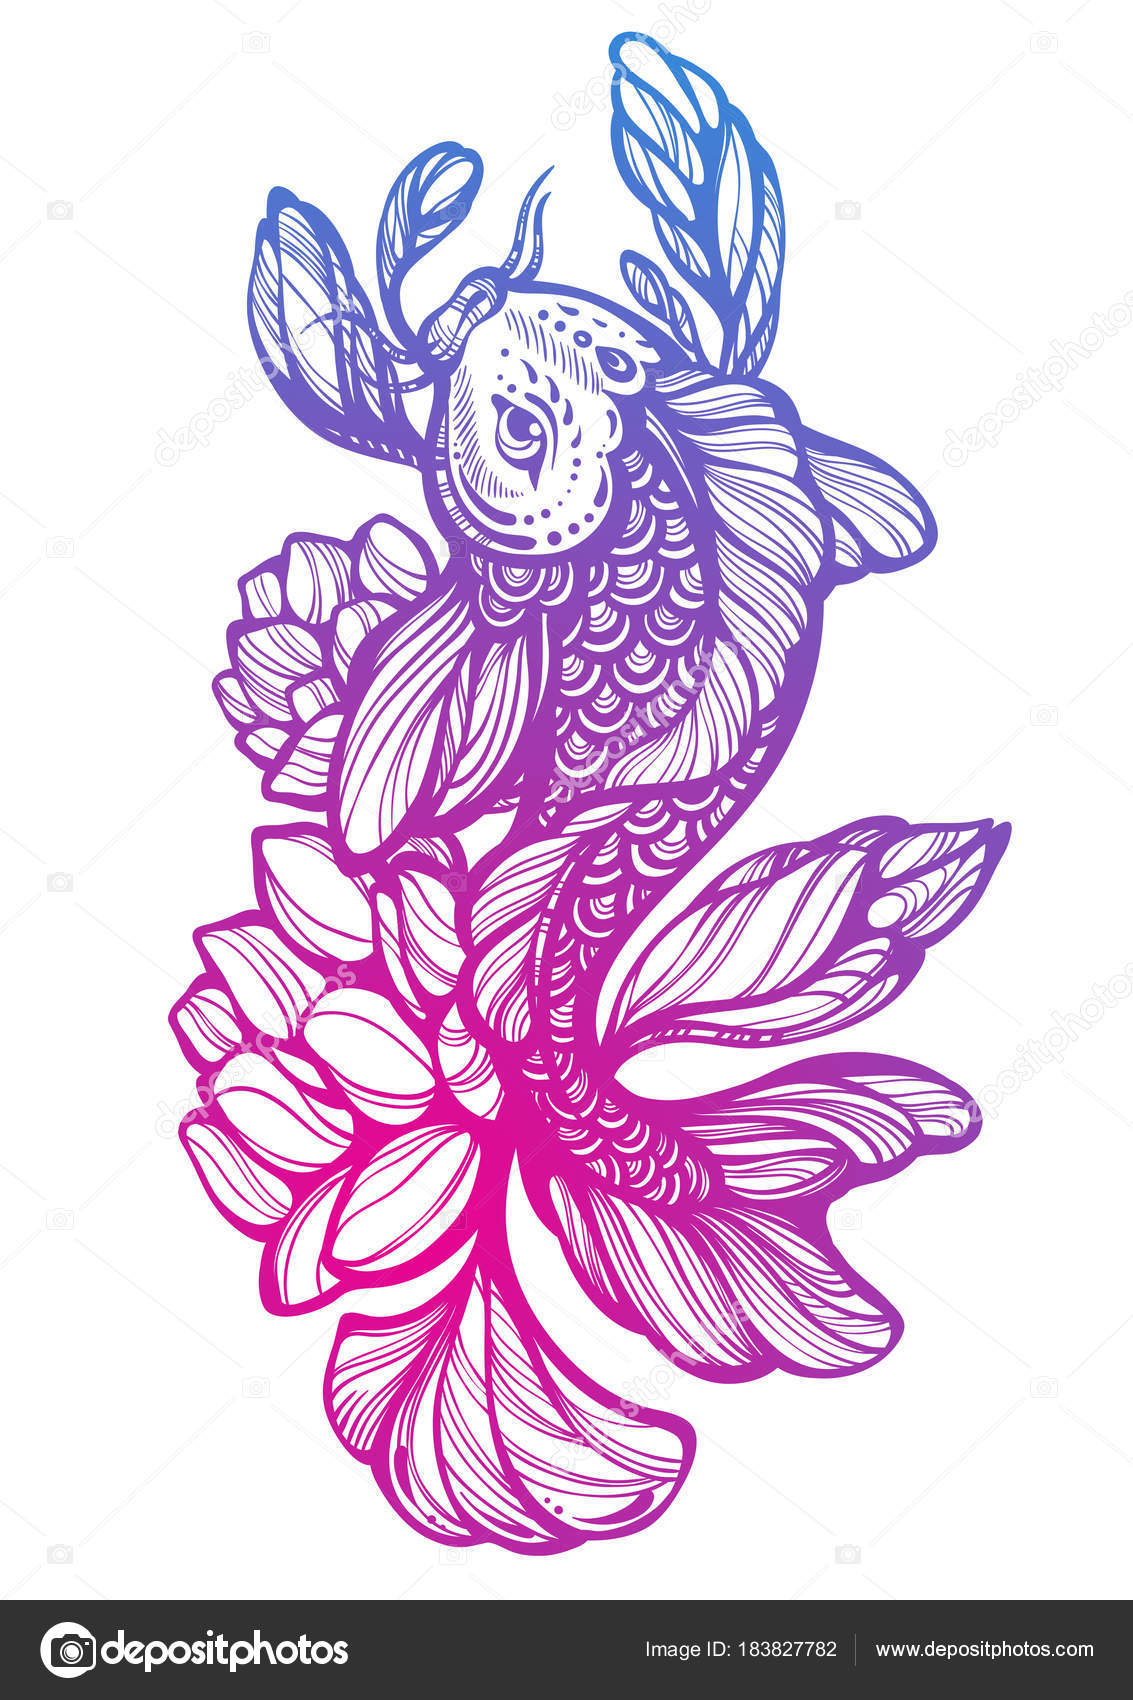 ba00572fa7619 High-detailed beautiful illustration of Koi carp fish with Lotus around.  Oriental decorative symbol. Hand-drawn vector artwork isolated. Tattoo art.